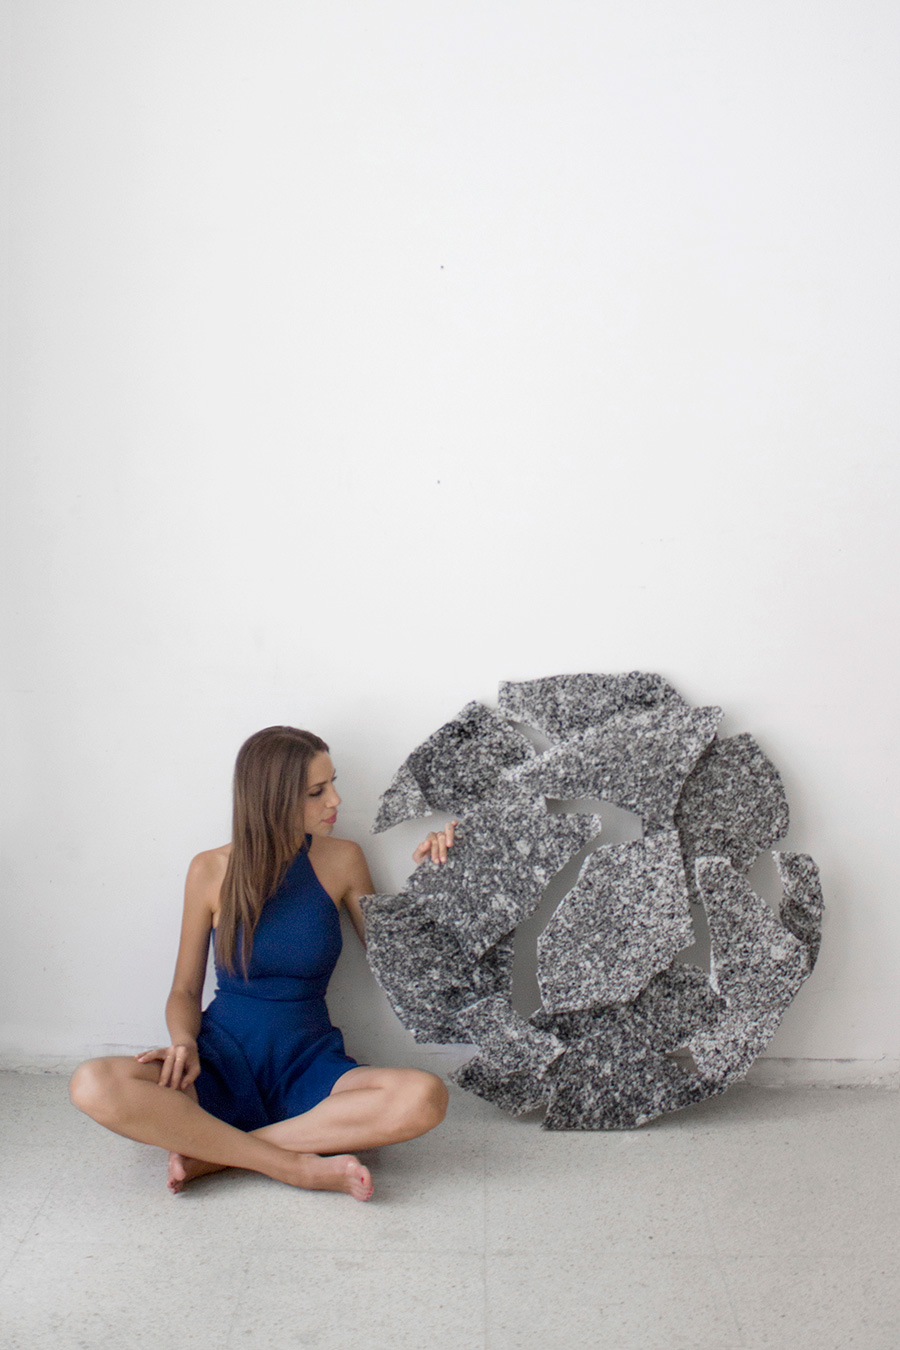 Carla Cascales' Sculpture Project, Moon   Yellowtrace